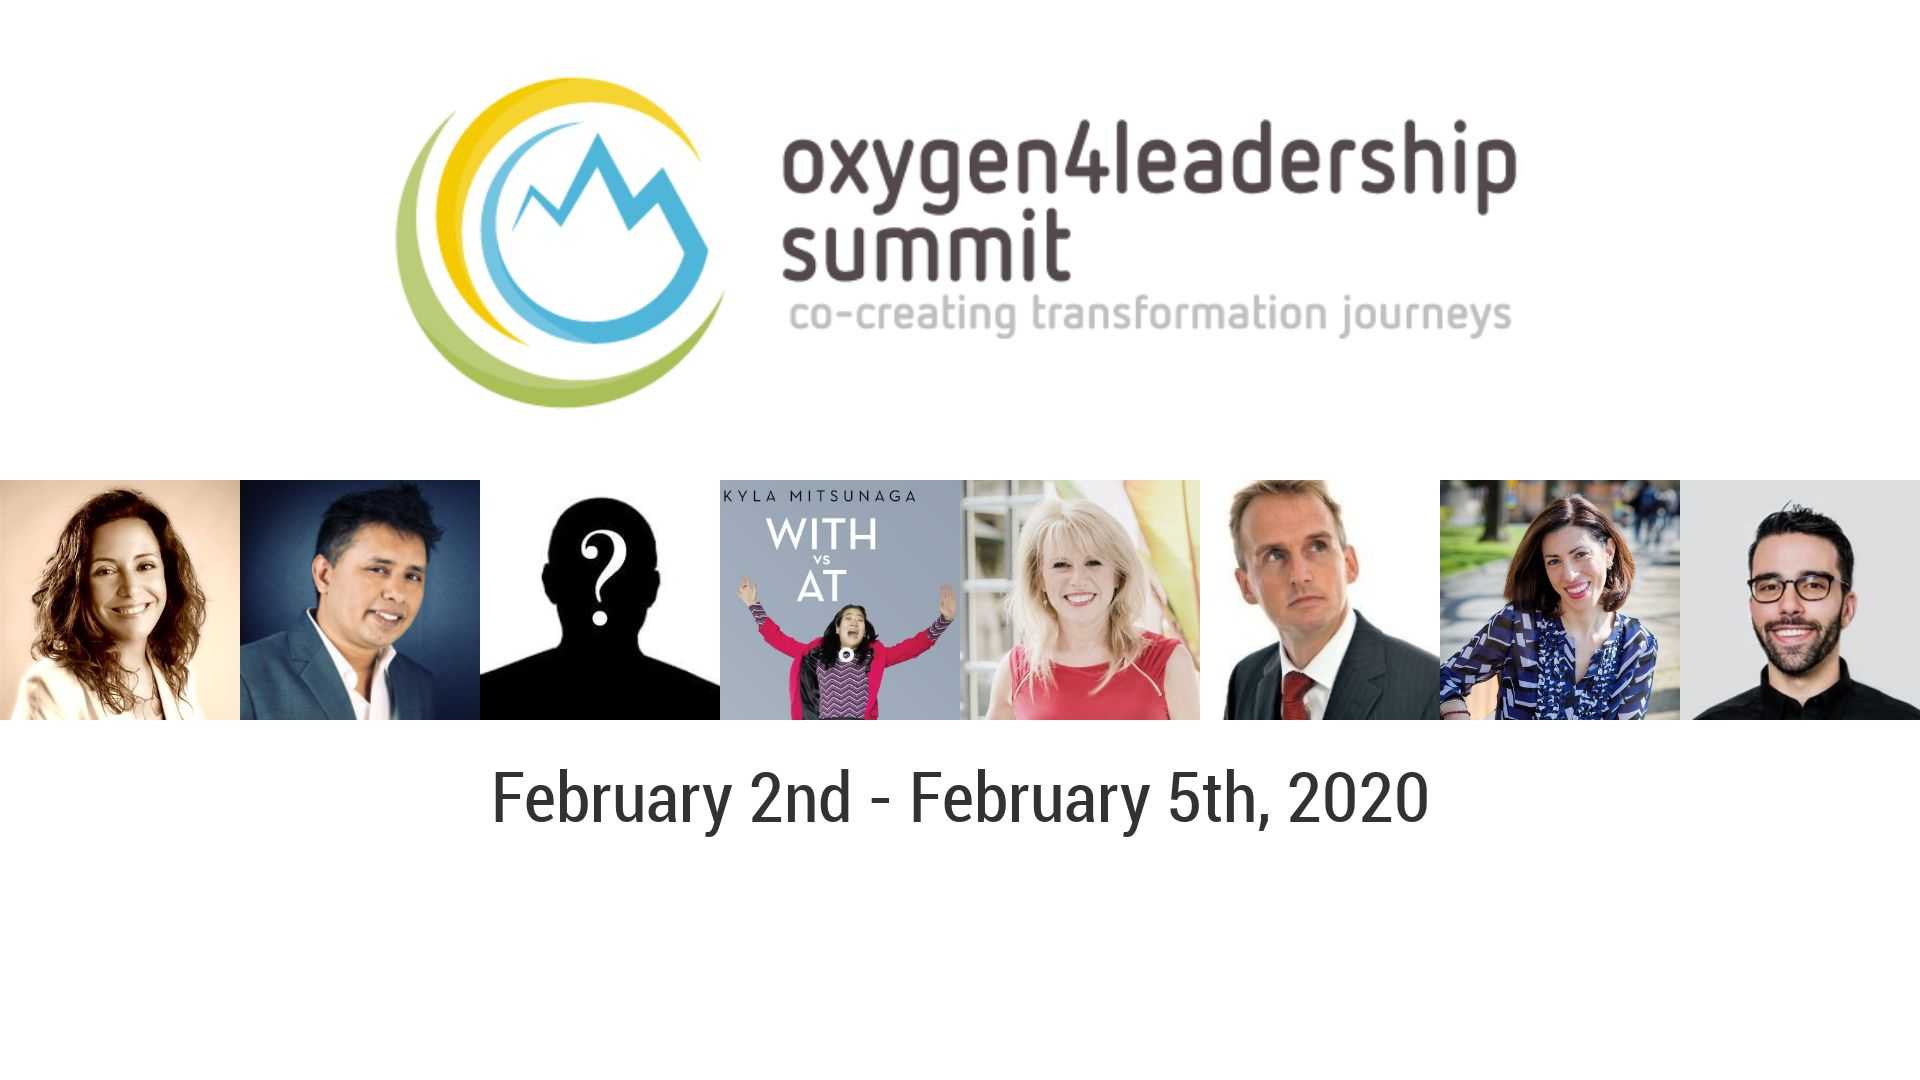 Article about SmartMoneyMatch is the Media Partner of The oxygen4leadership Summit 2020!